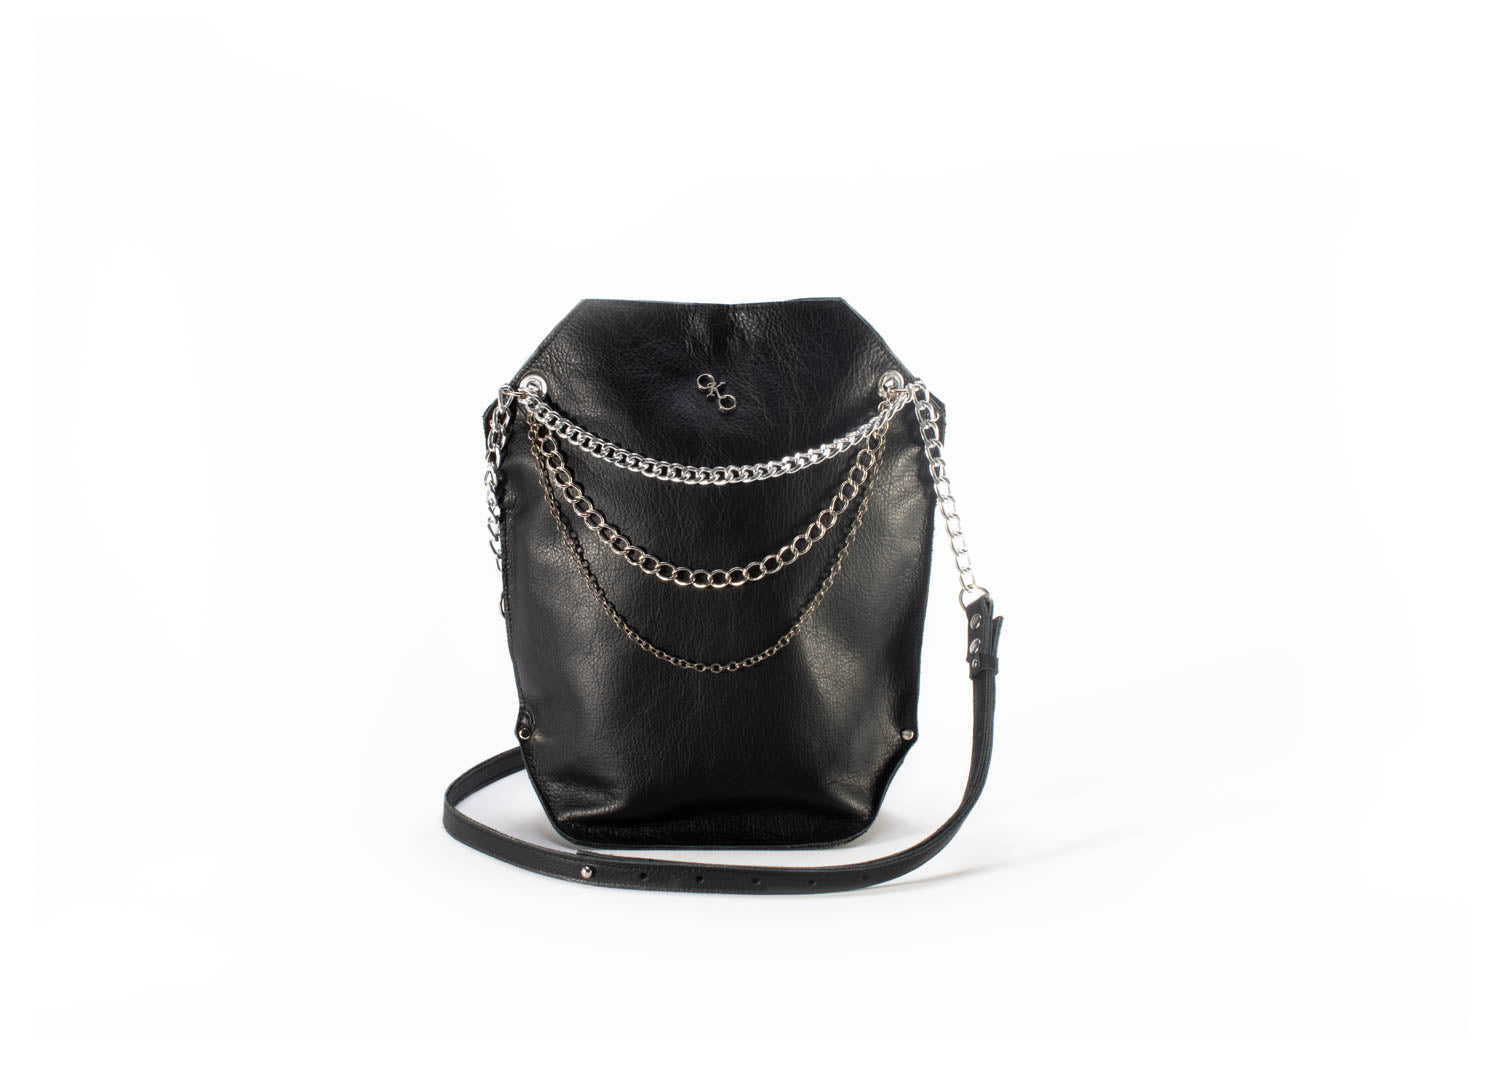 """Urban Chic"" shoulder bag with chains-handmade leather bags-handcrafted leather-unique design bag-luxury leather bag-stylish bag-OKOhandbags"